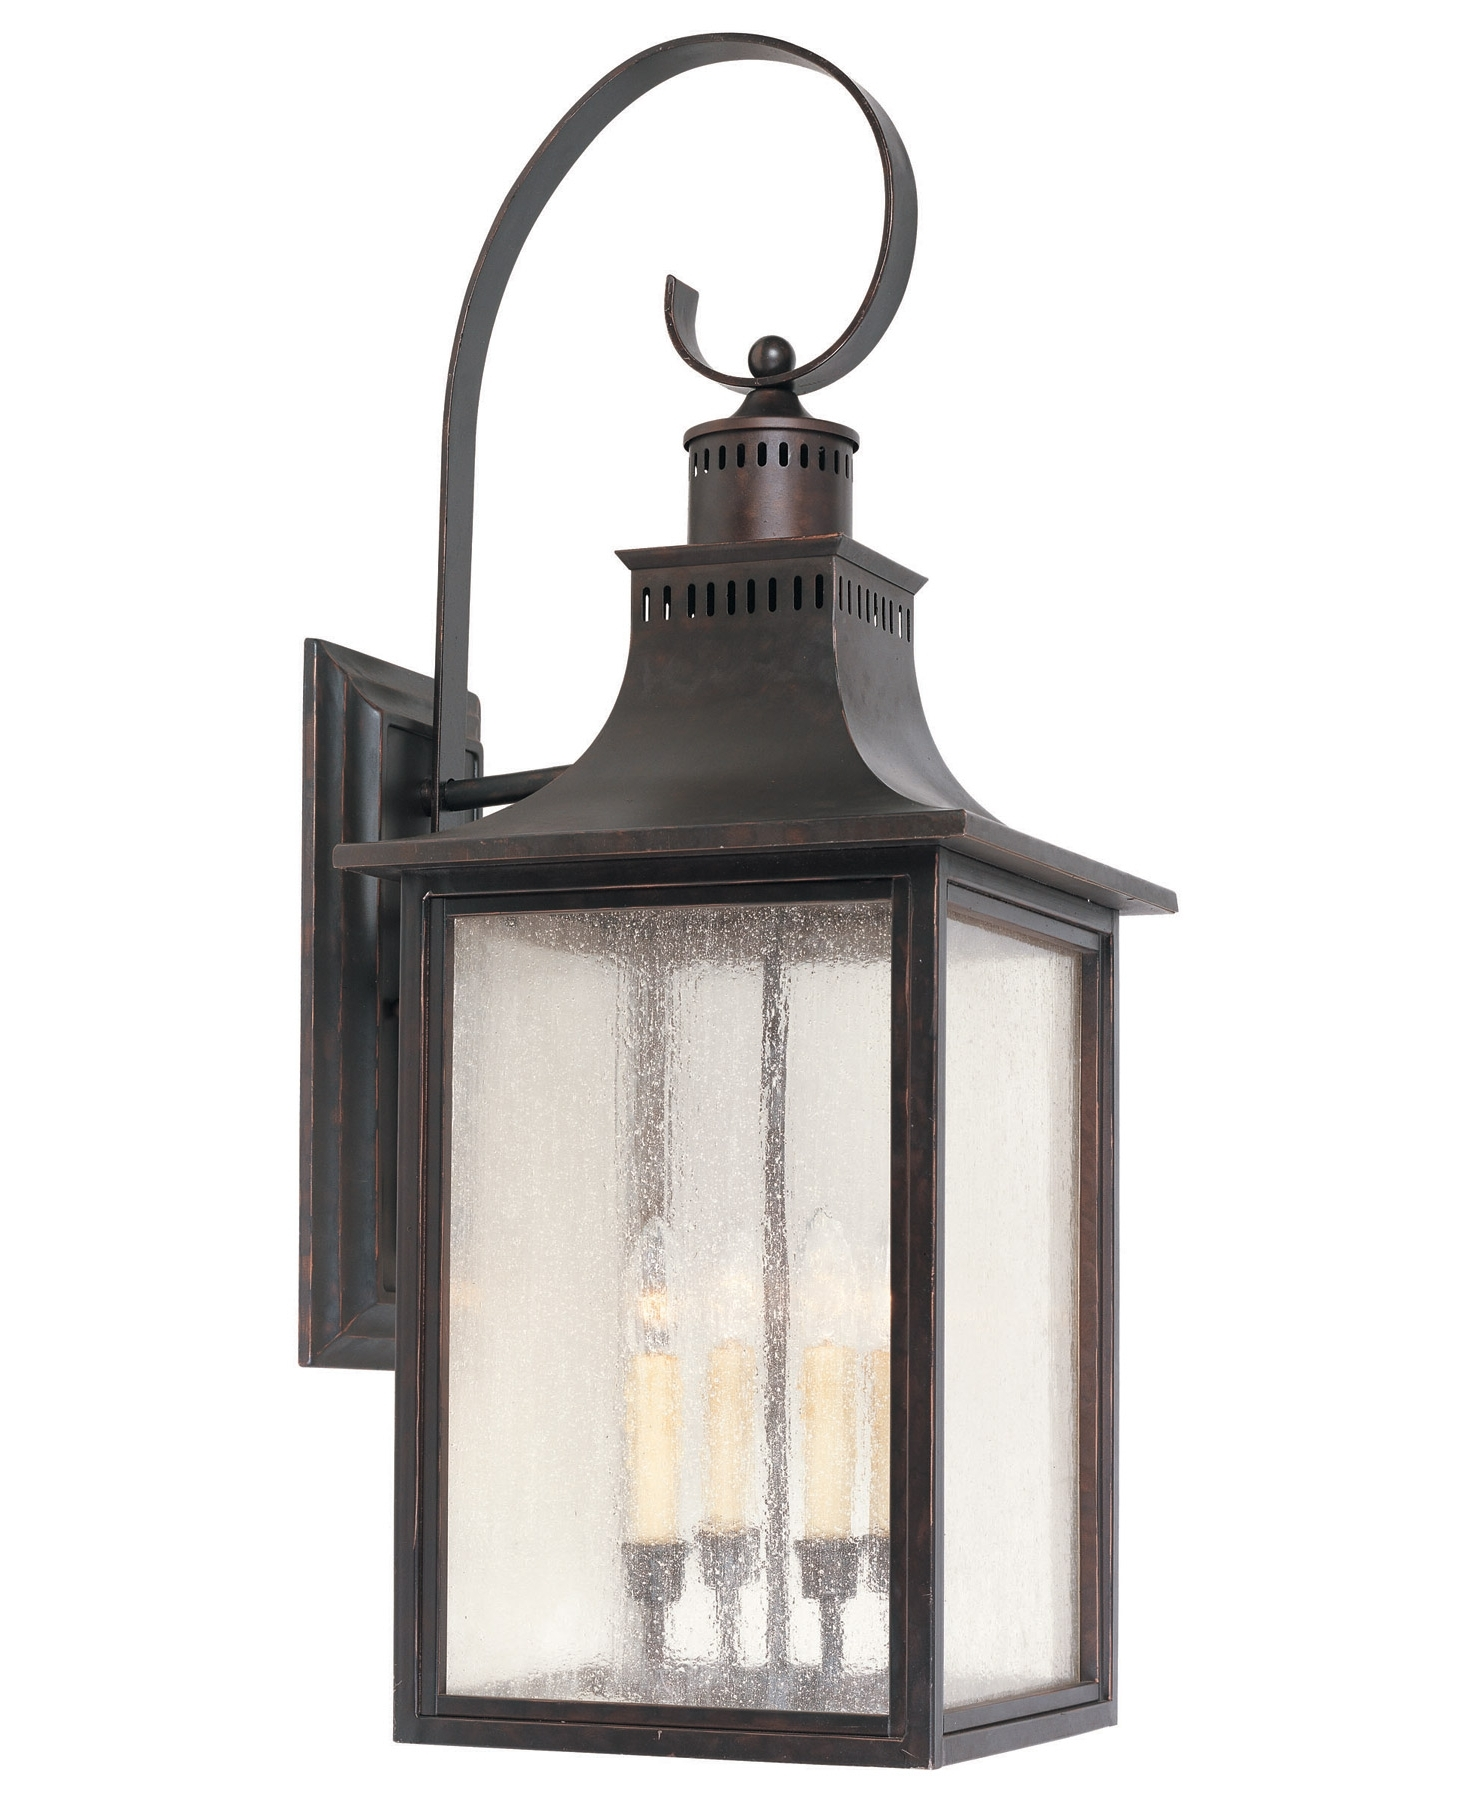 Savoy House 5 257 13 Monte Grande Outdoor Wall Mount Lantern Intended For Favorite Wall Mounted Outdoor Lanterns (Gallery 3 of 20)